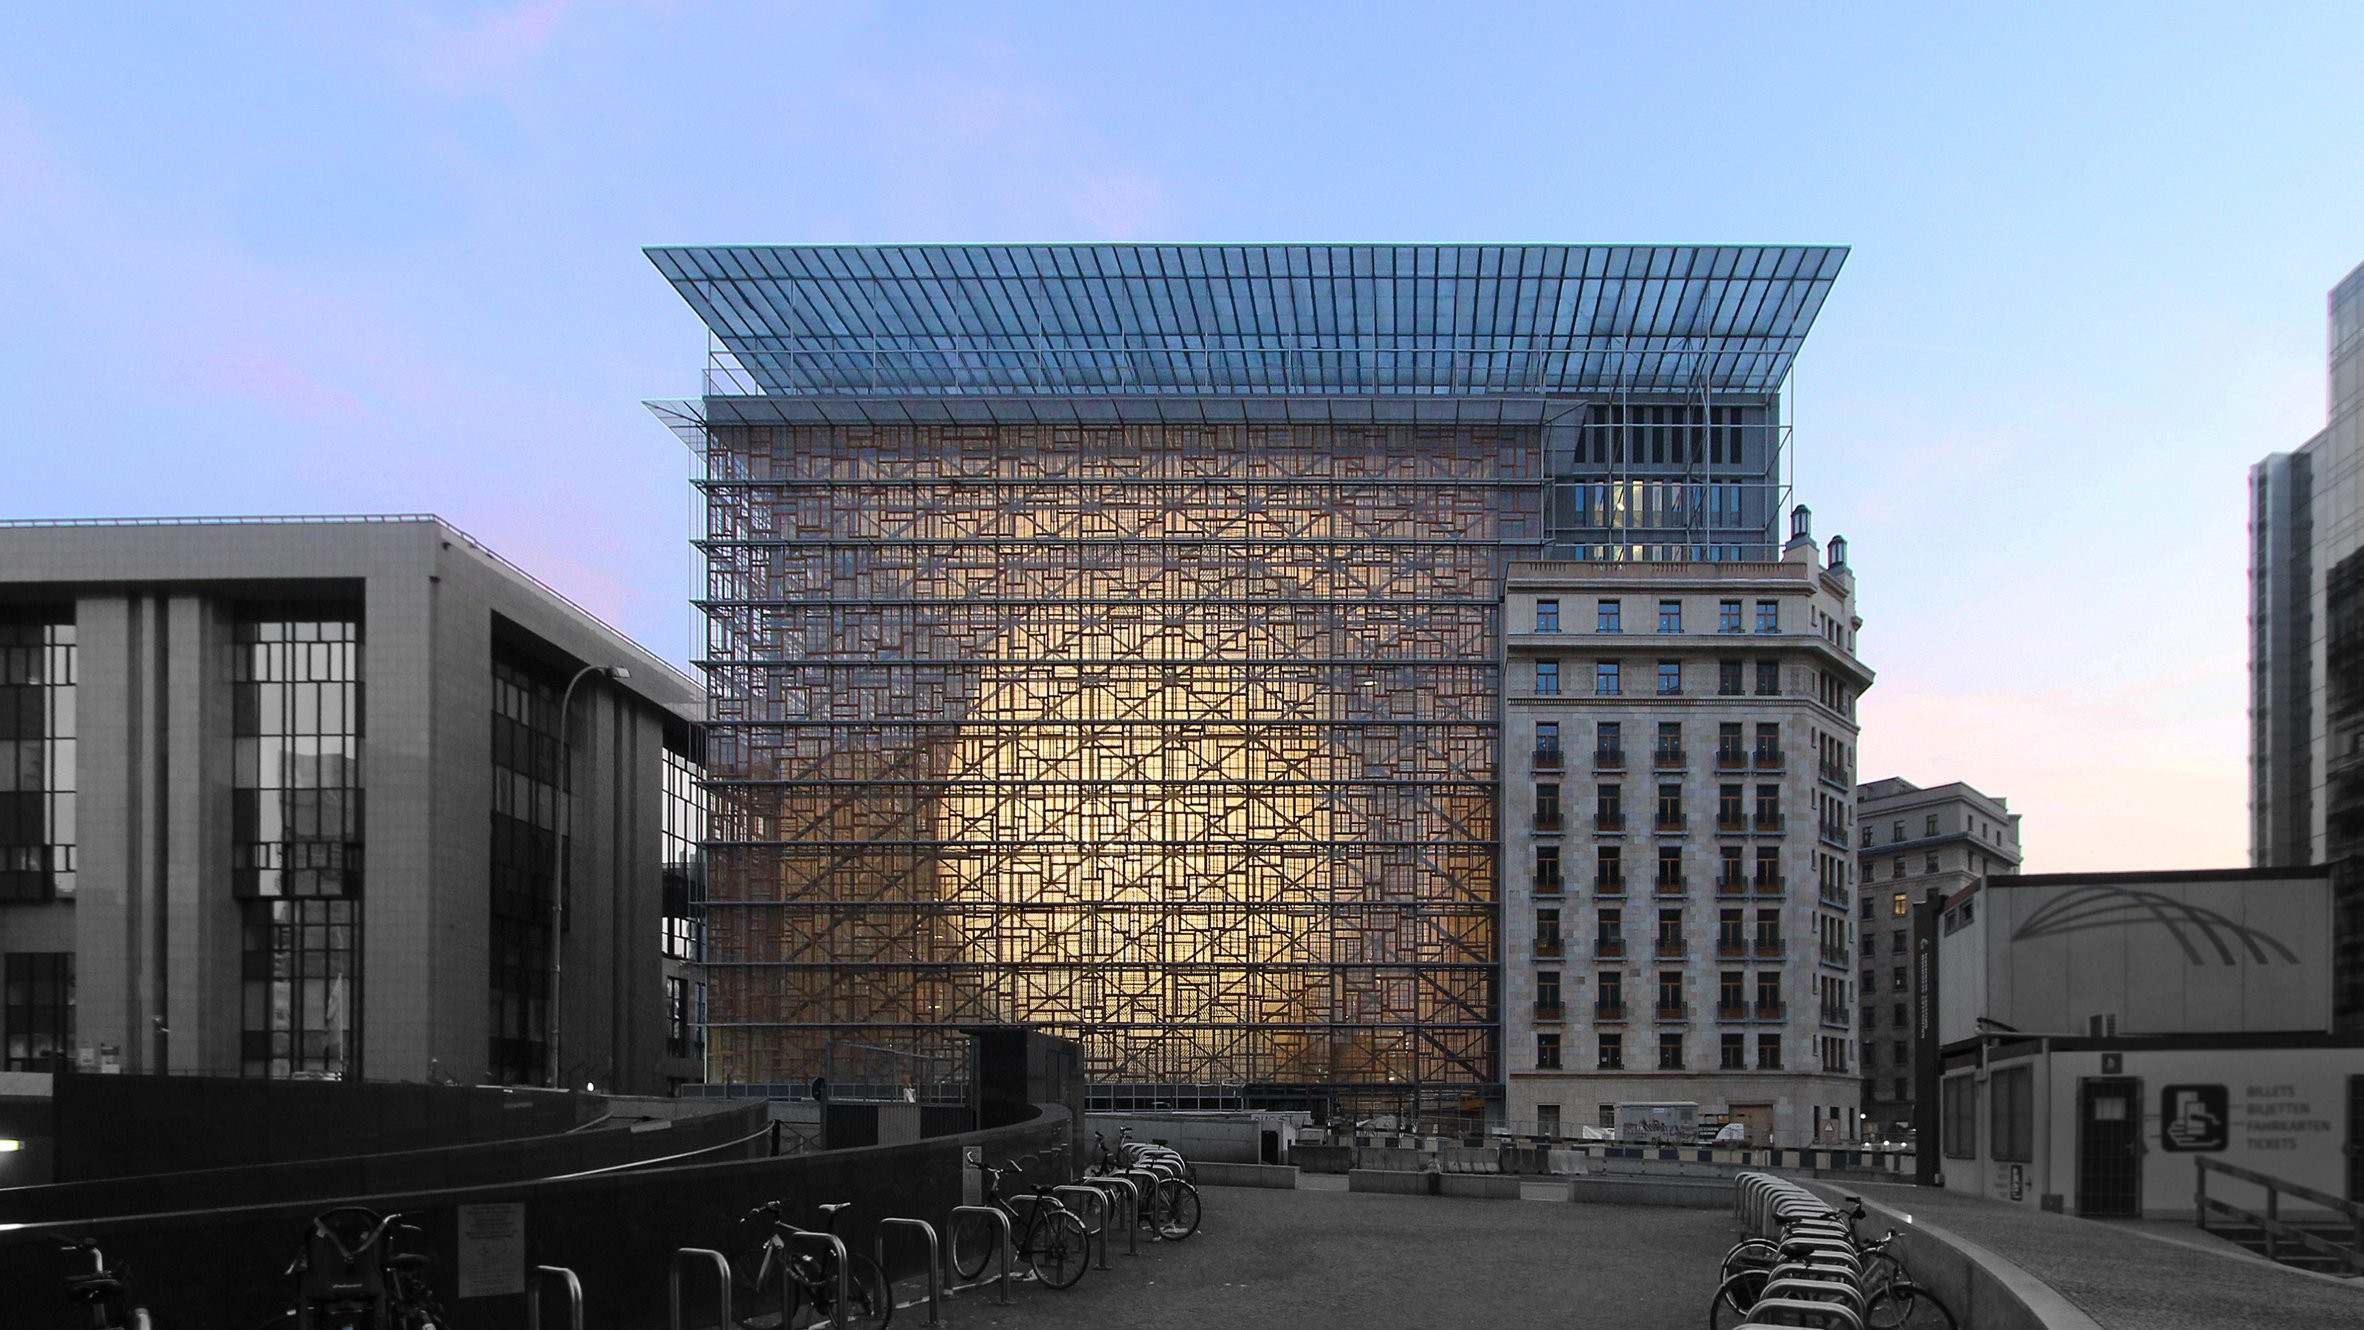 © Philippe SAMYN and PARTNERS architects & engineers